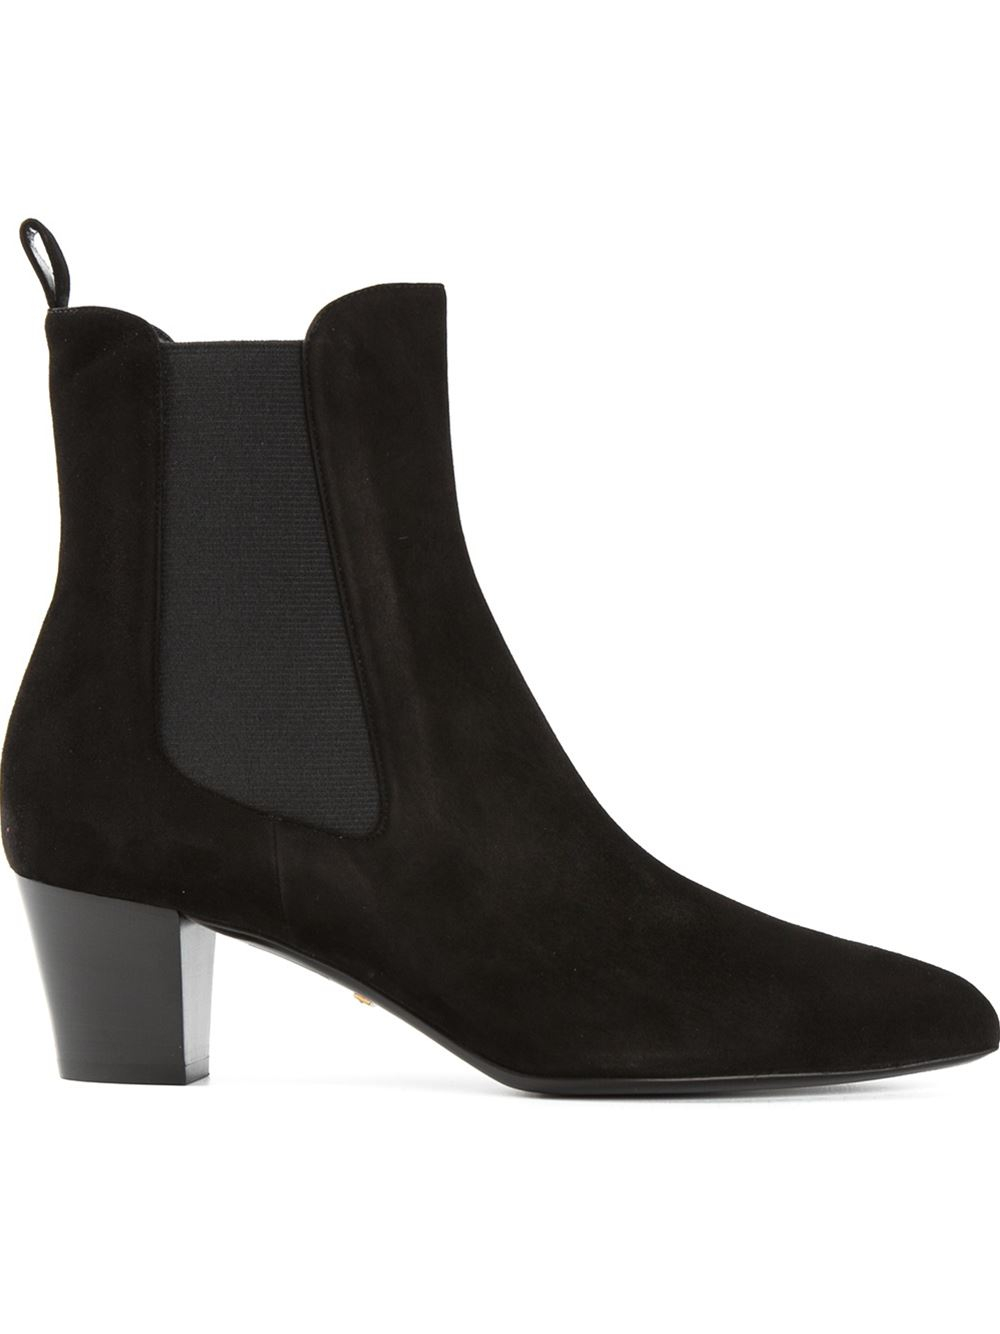 Gucci Chunky Heel Chelsea Boots in Black | Lyst